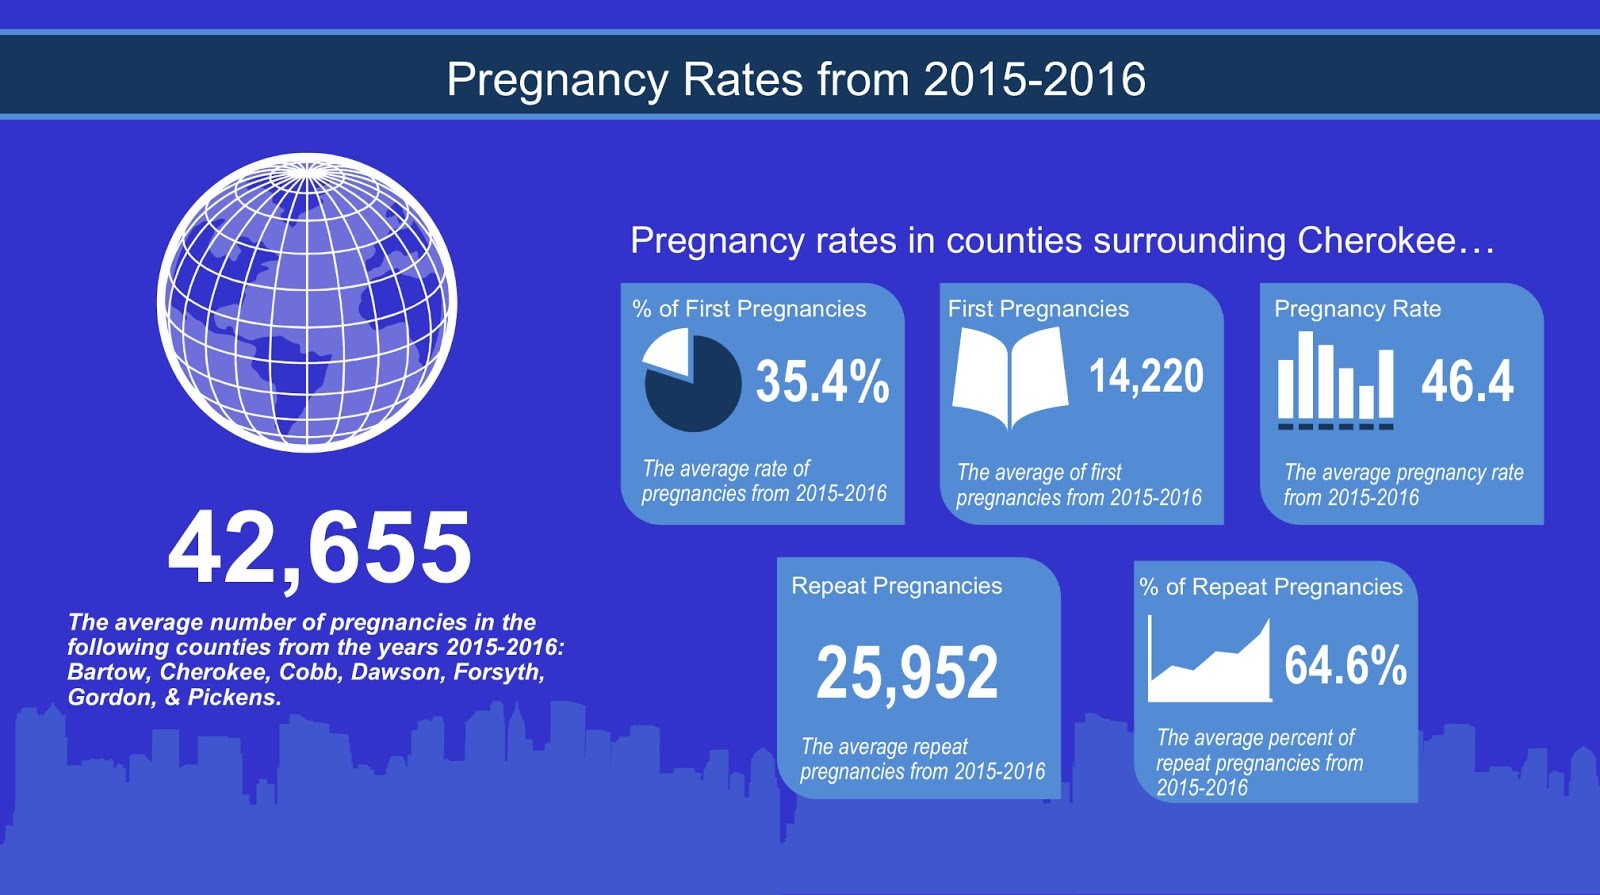 Pregnancy Rates from 2015-2016, slightly higher